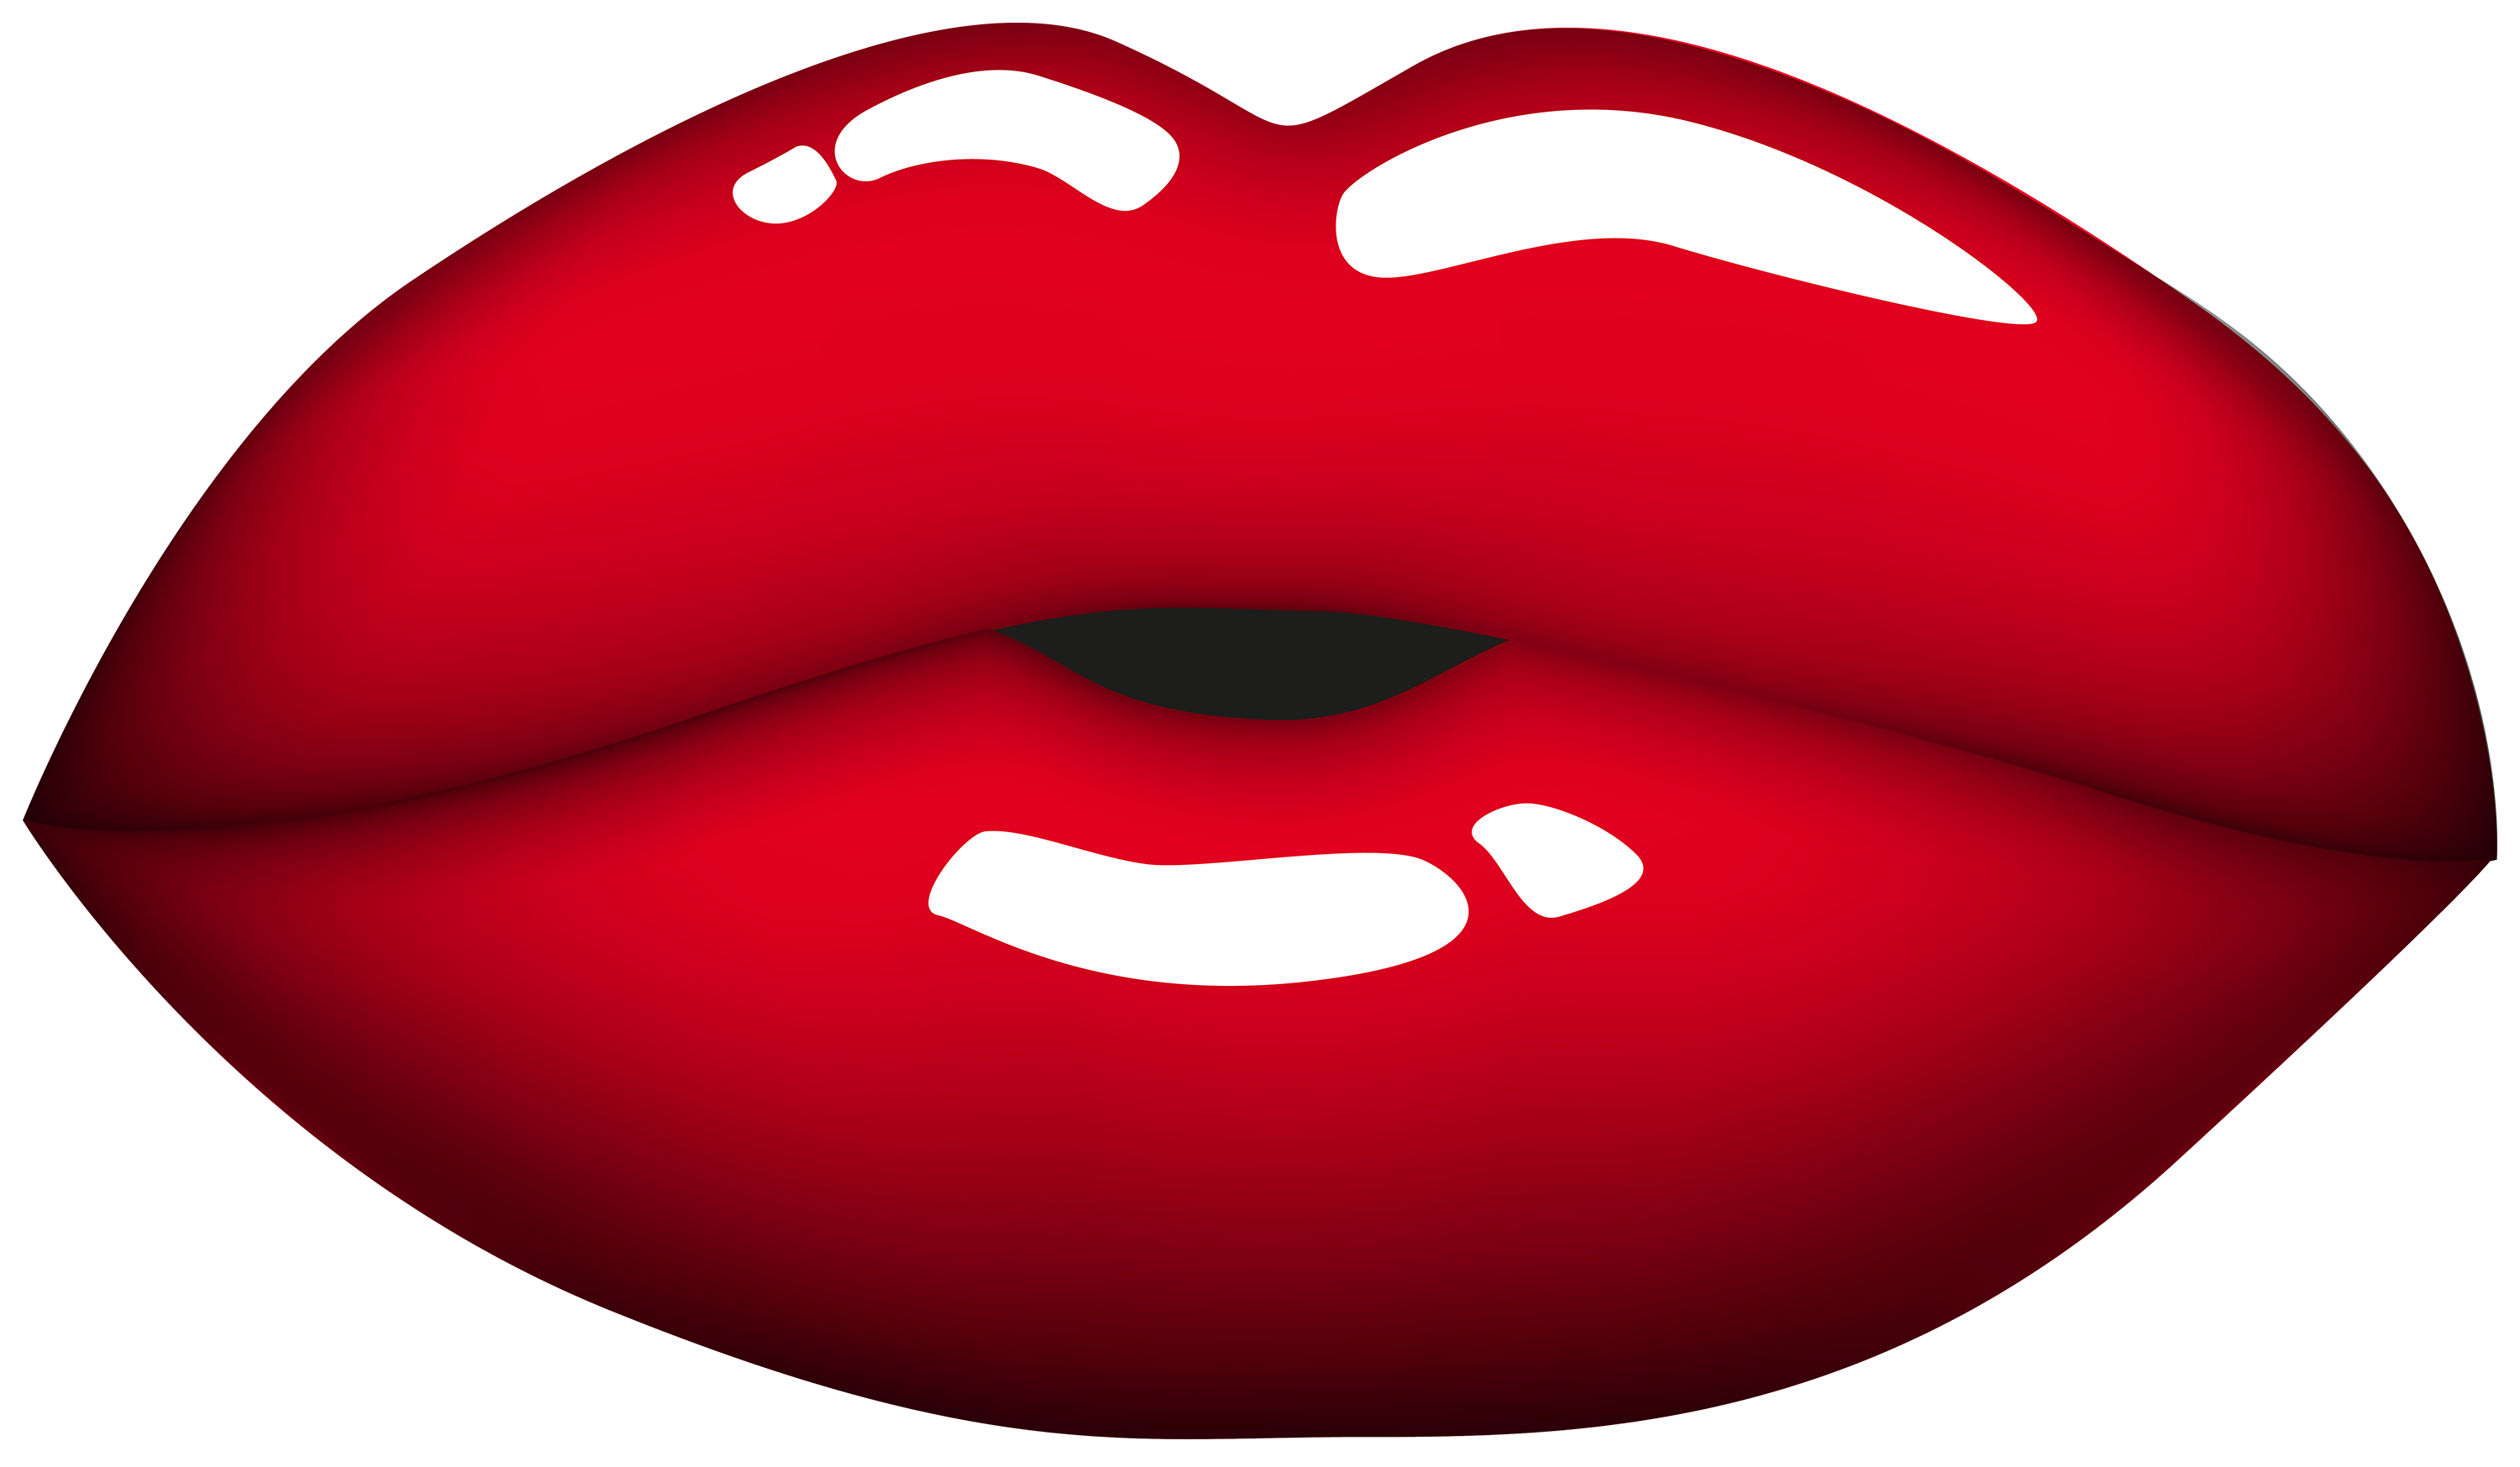 Red mouth png best. Lip clipart clipart freeuse